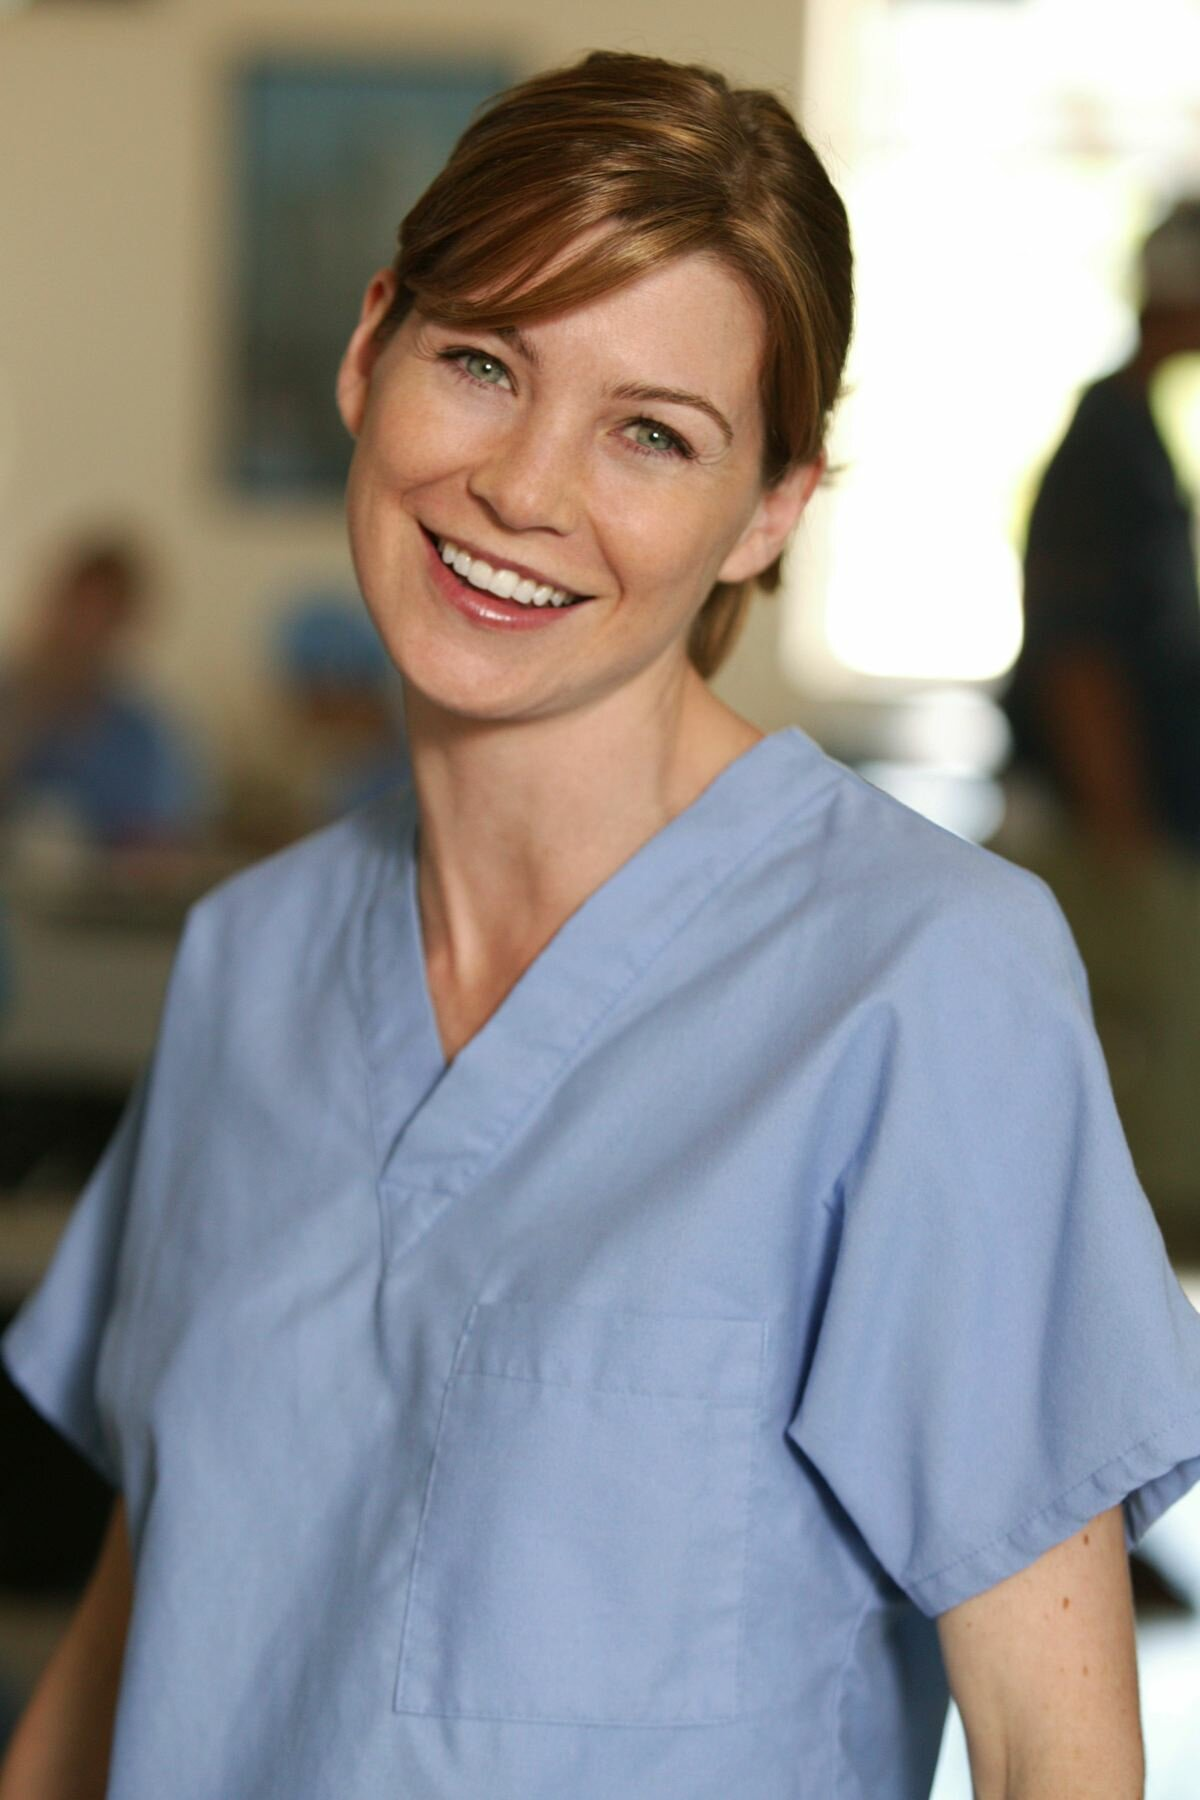 greys anat meredith makes - HD 1200×1800